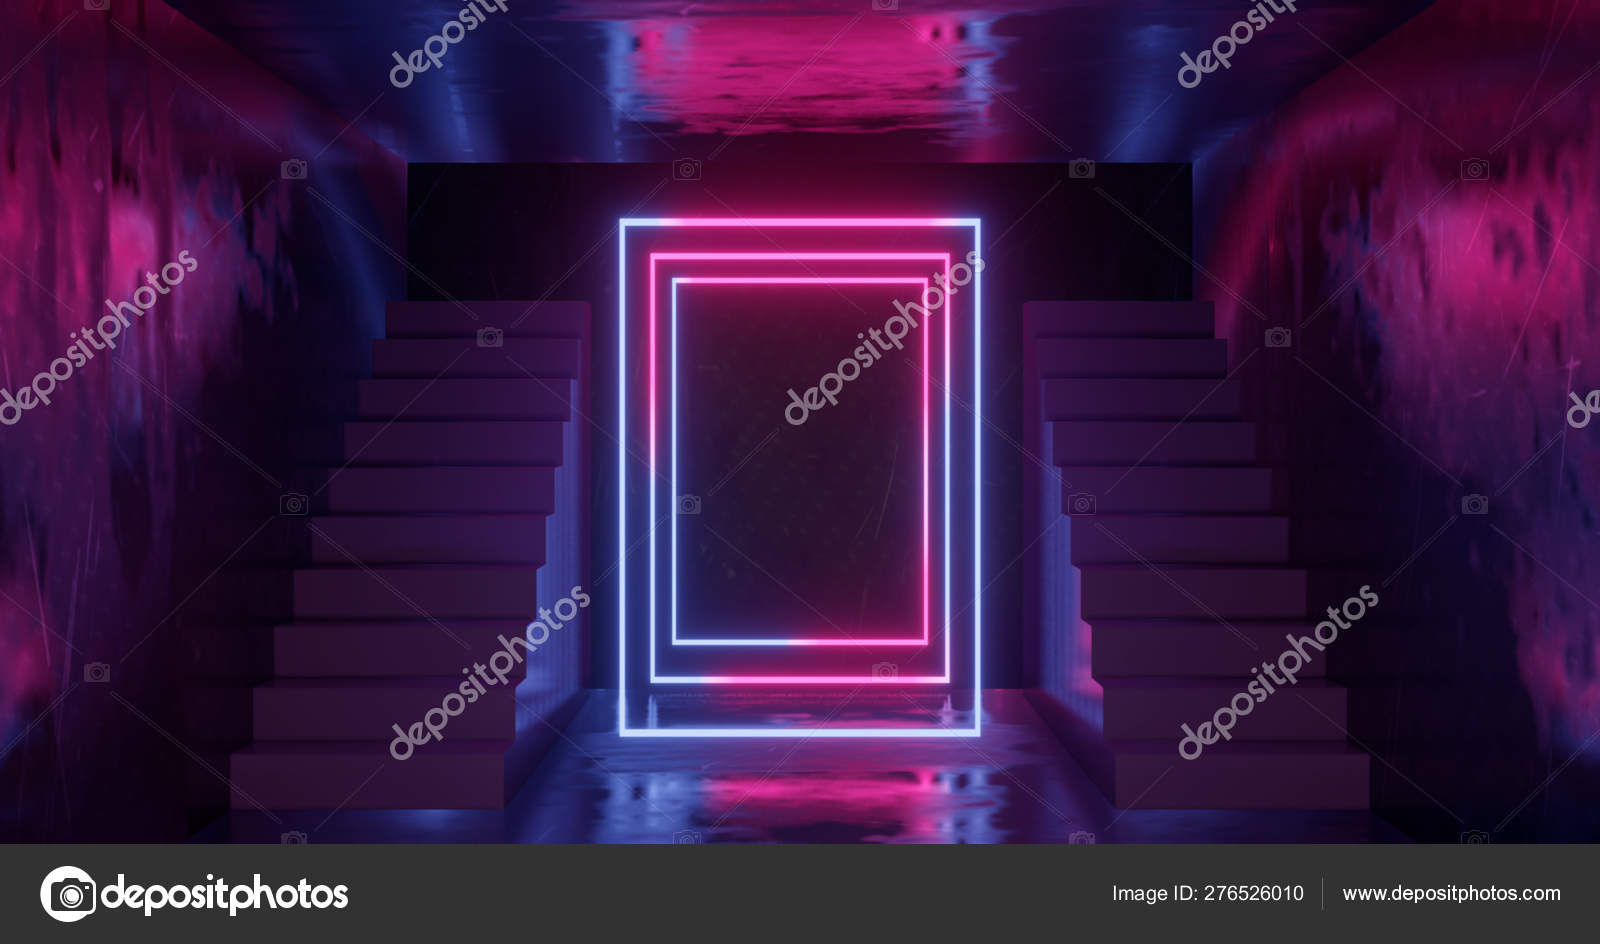 3d Rendering Abstract Neon Background Pink Blue Glowing